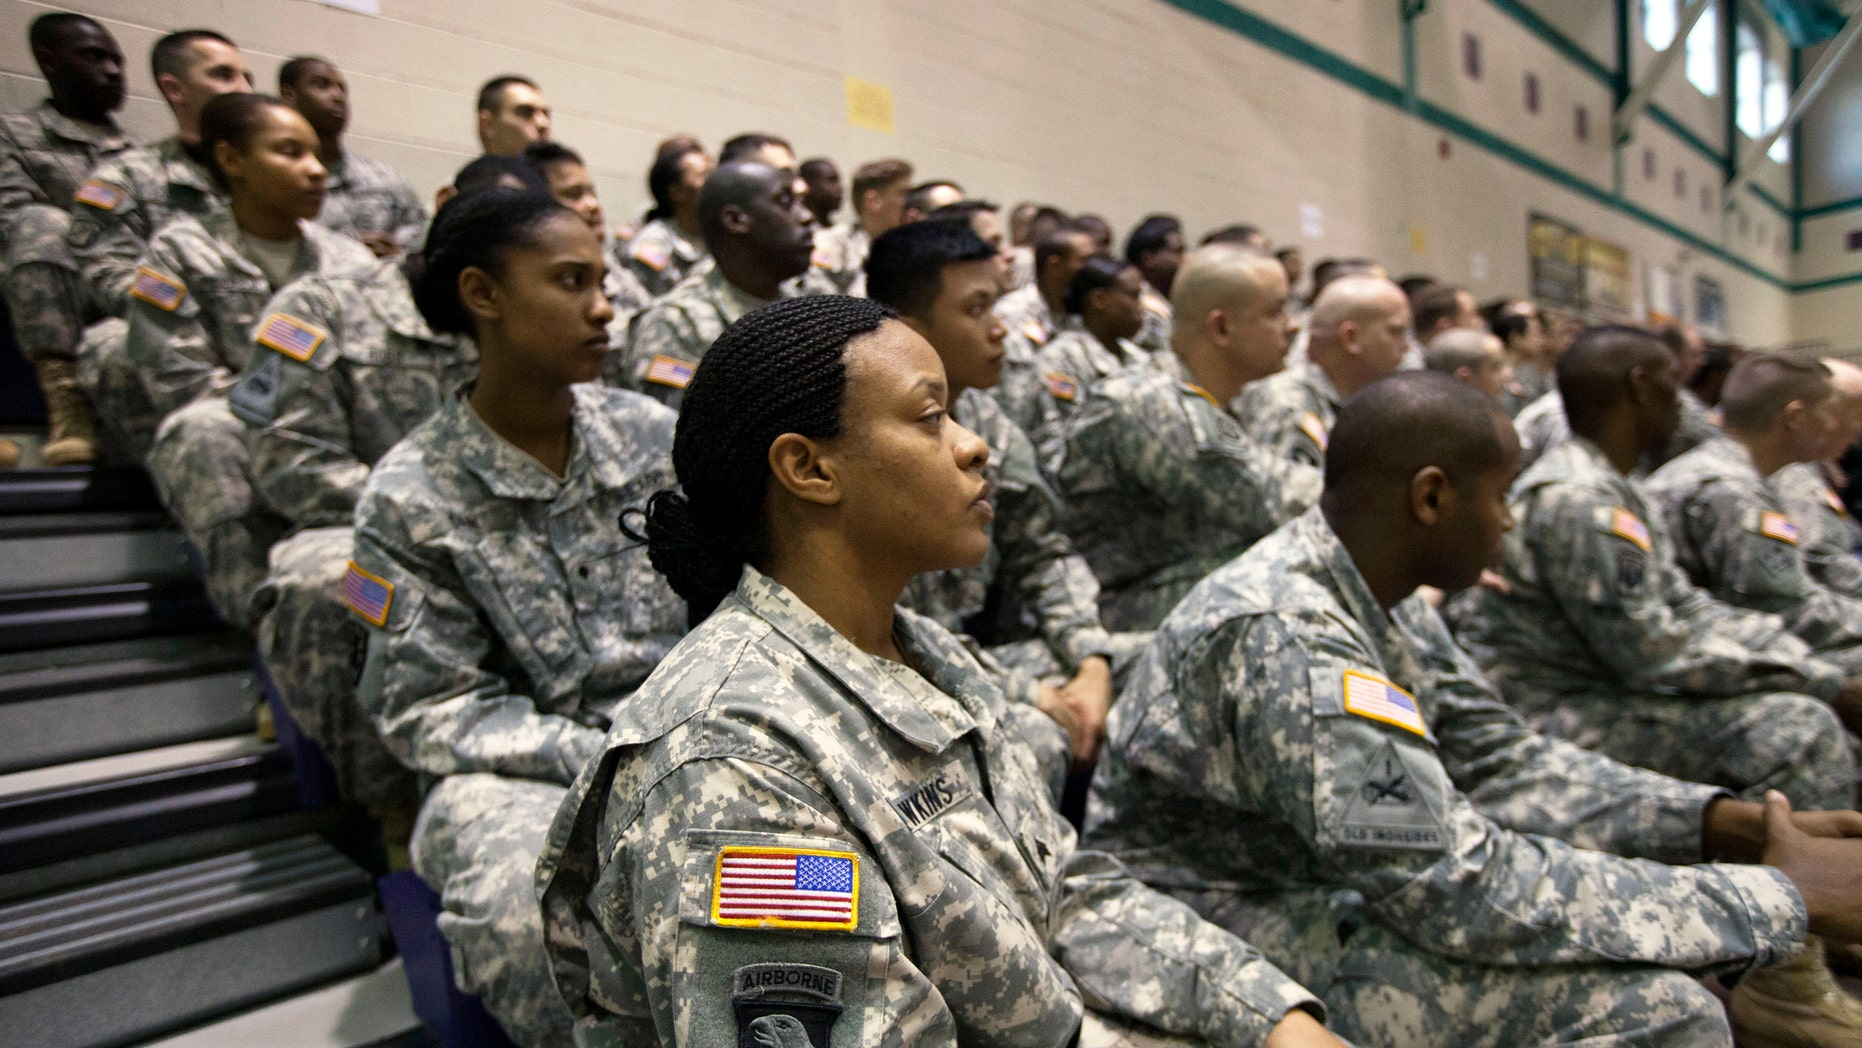 U.S. Army Sgt Dawn Hawkins, foreground, listens to Secretary of Defense Chuck Hagel speak to soldiers about the Army's future during a visit to Fort Eustis, Va., Tuesday, Feb. 25, 2014. Hagel is proposing to shrink the Army to its smallest size in three-quarters of a century, hoping to reshape the military after more than a decade of war in Iraq and Afghanistan and roped in by fiscal constraints set by Congress. (AP Photo/The Virginian-Pilot, The' N. Pham)  MAGS OUT